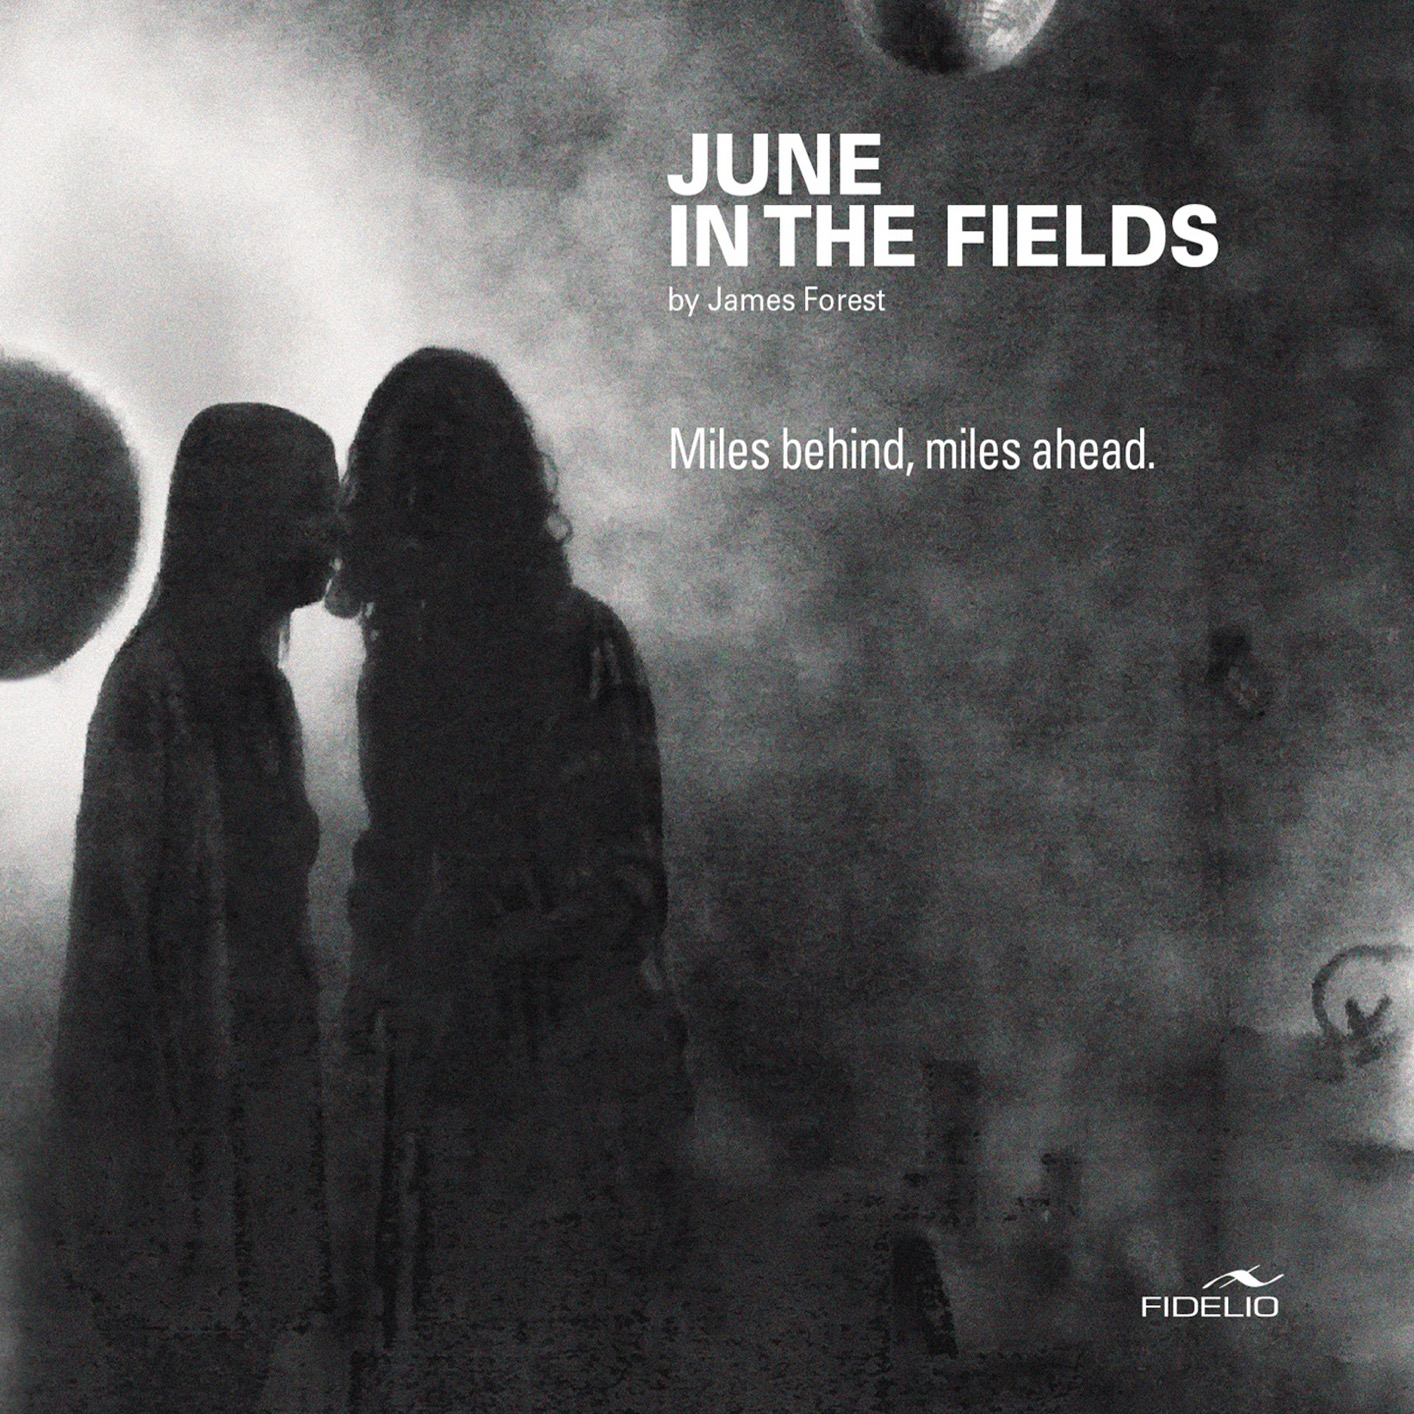 June In The Fields - Miles behind, miles ahead